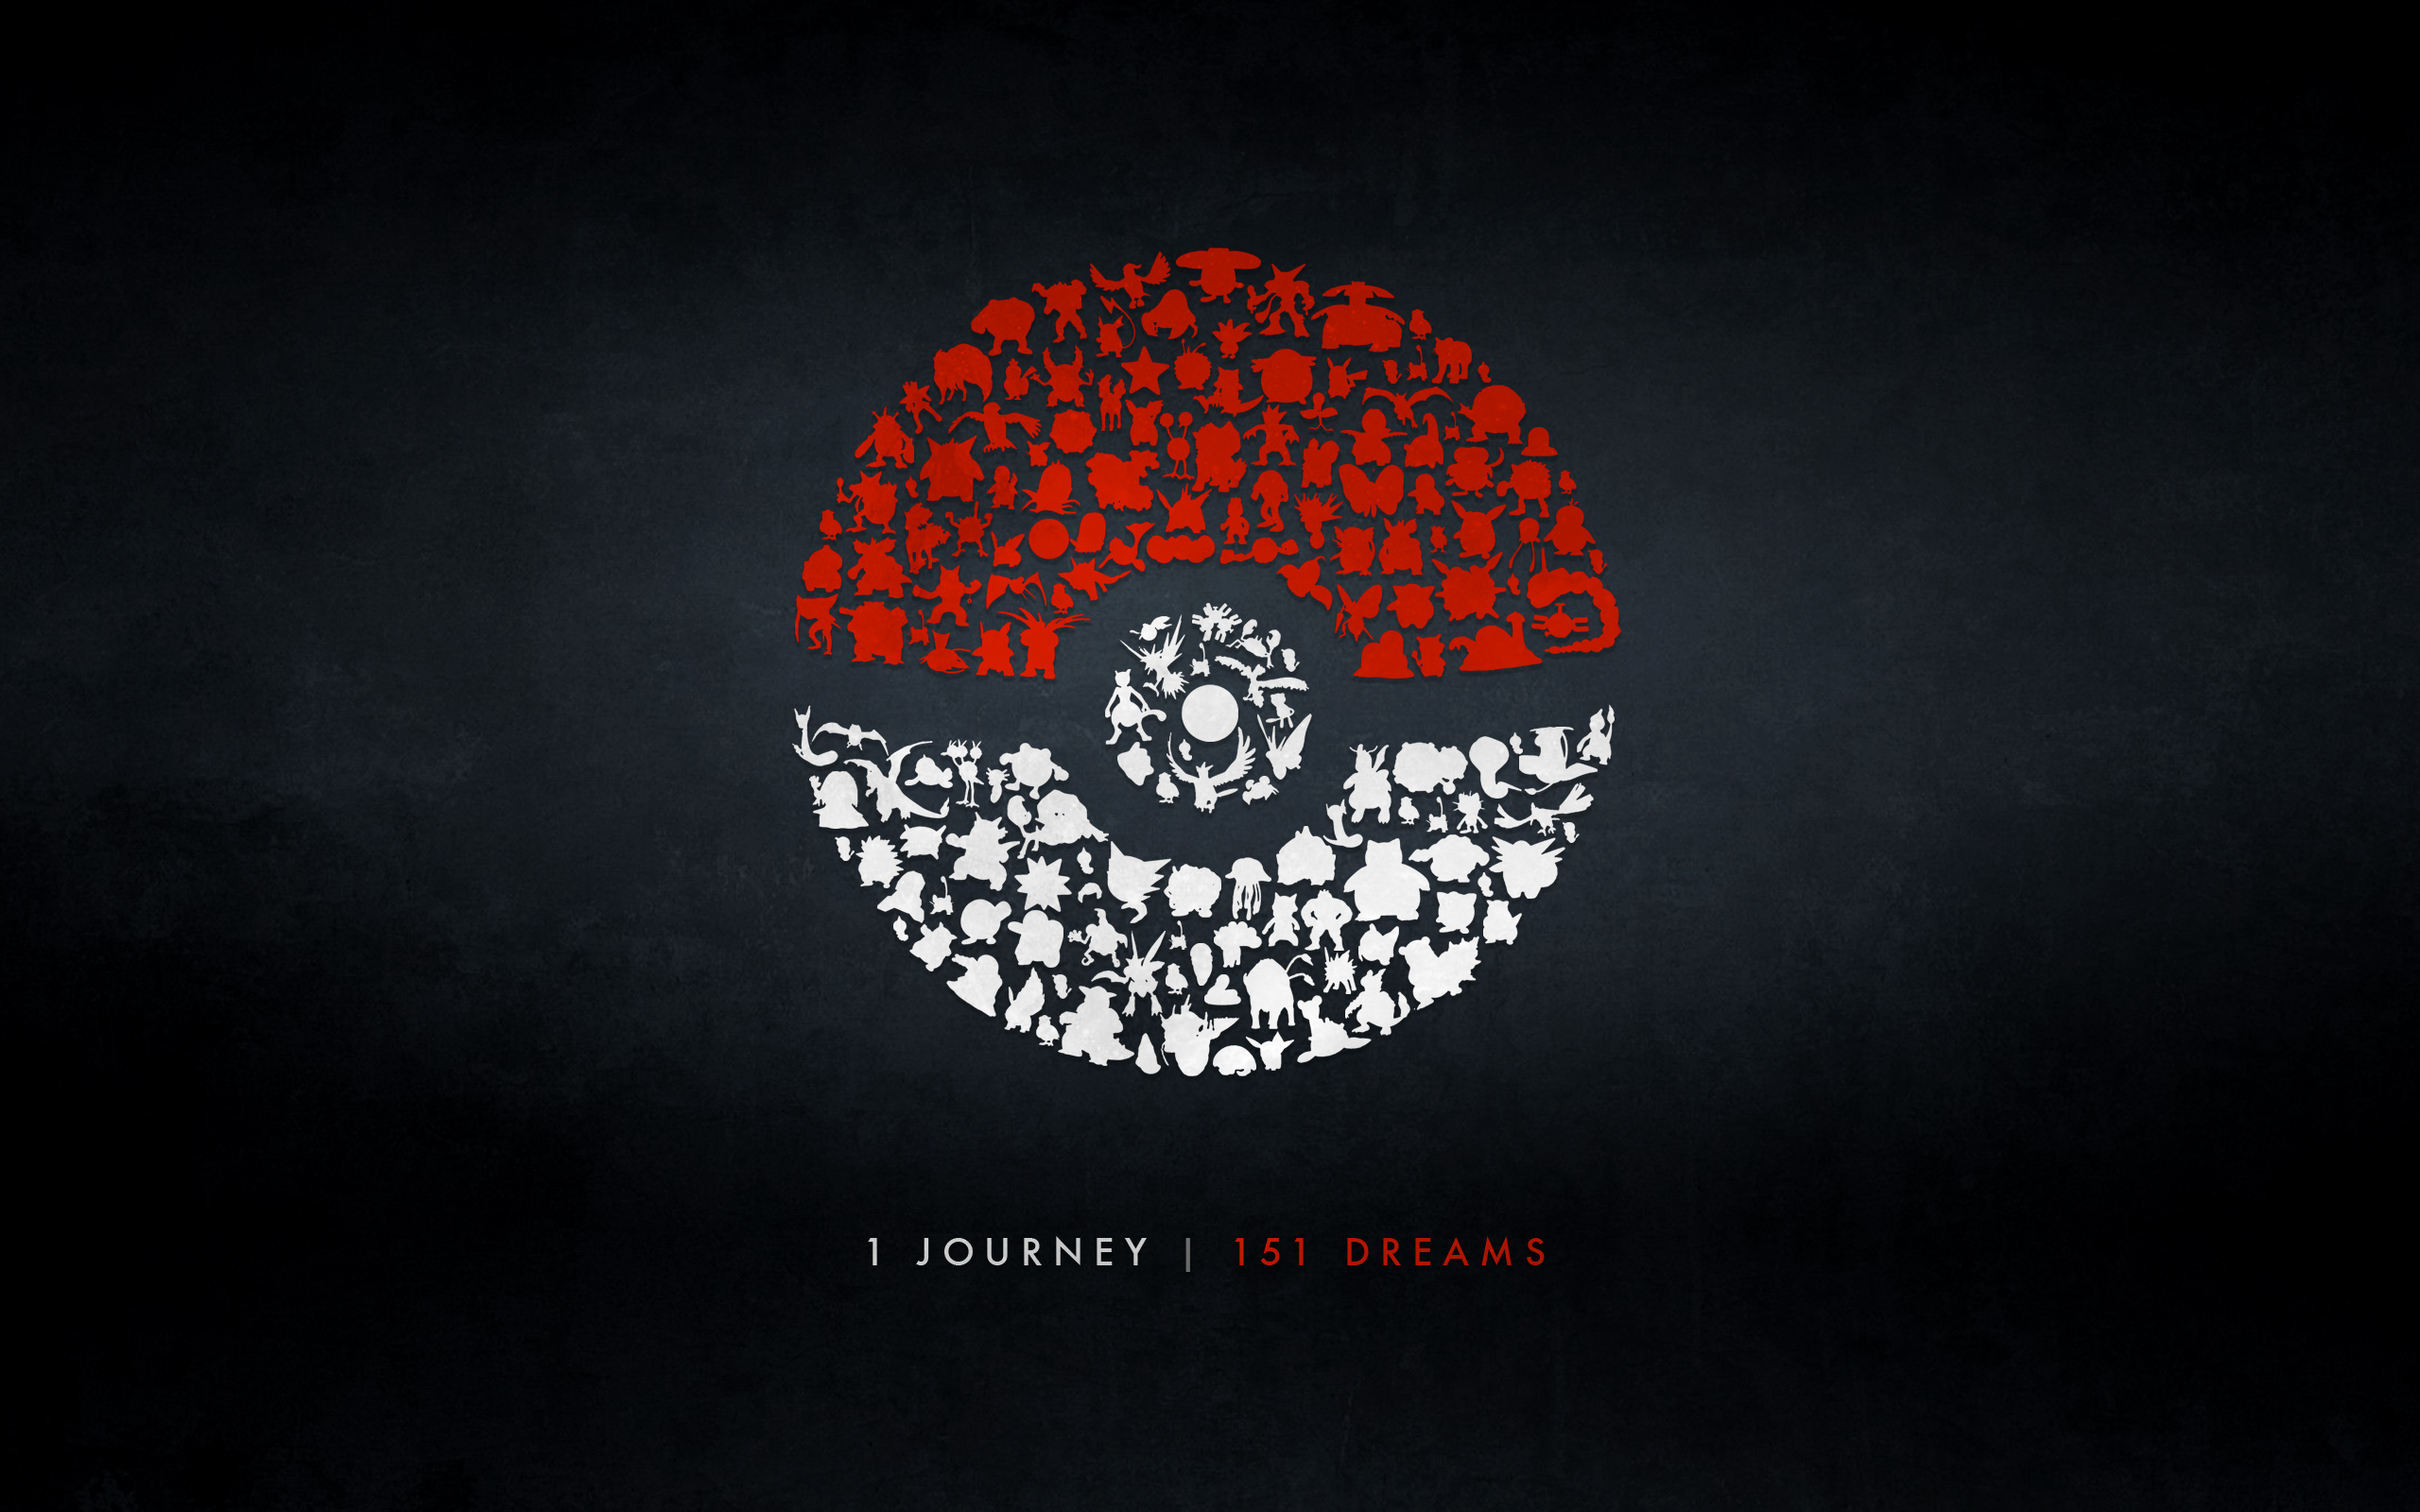 Pokemon Go HD wallpaper